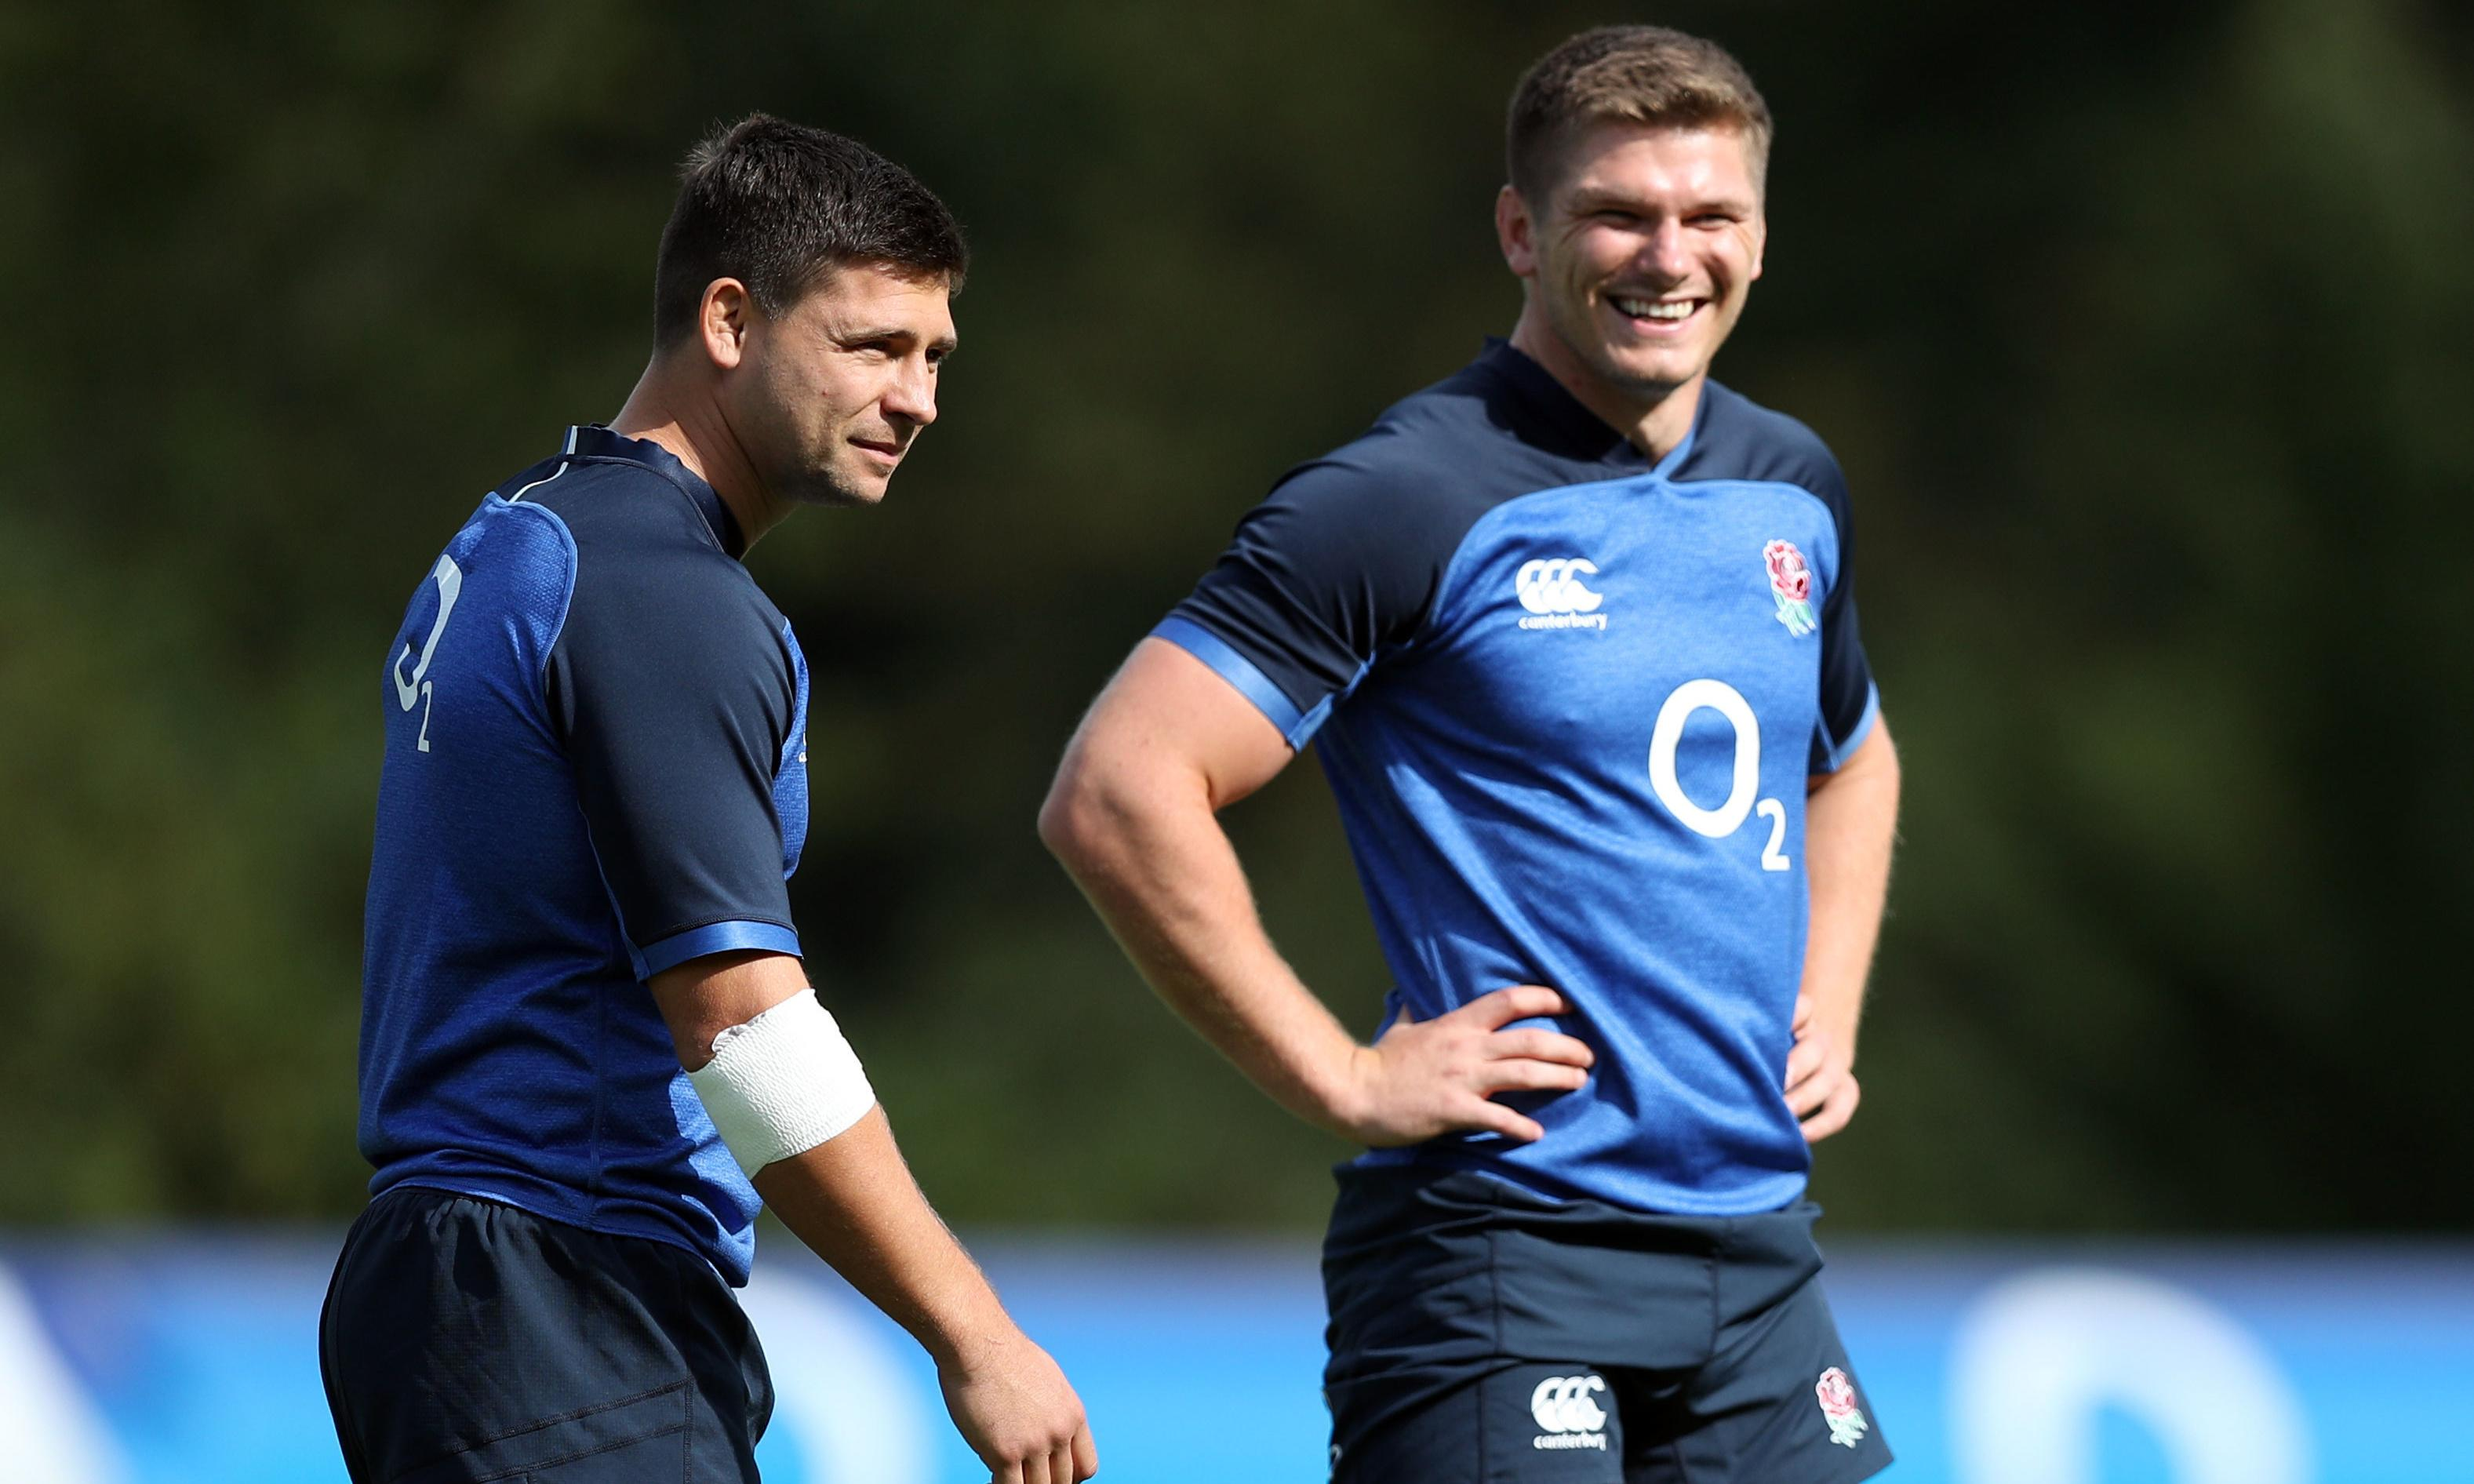 Topping world rankings is not important, says England's Ben Youngs